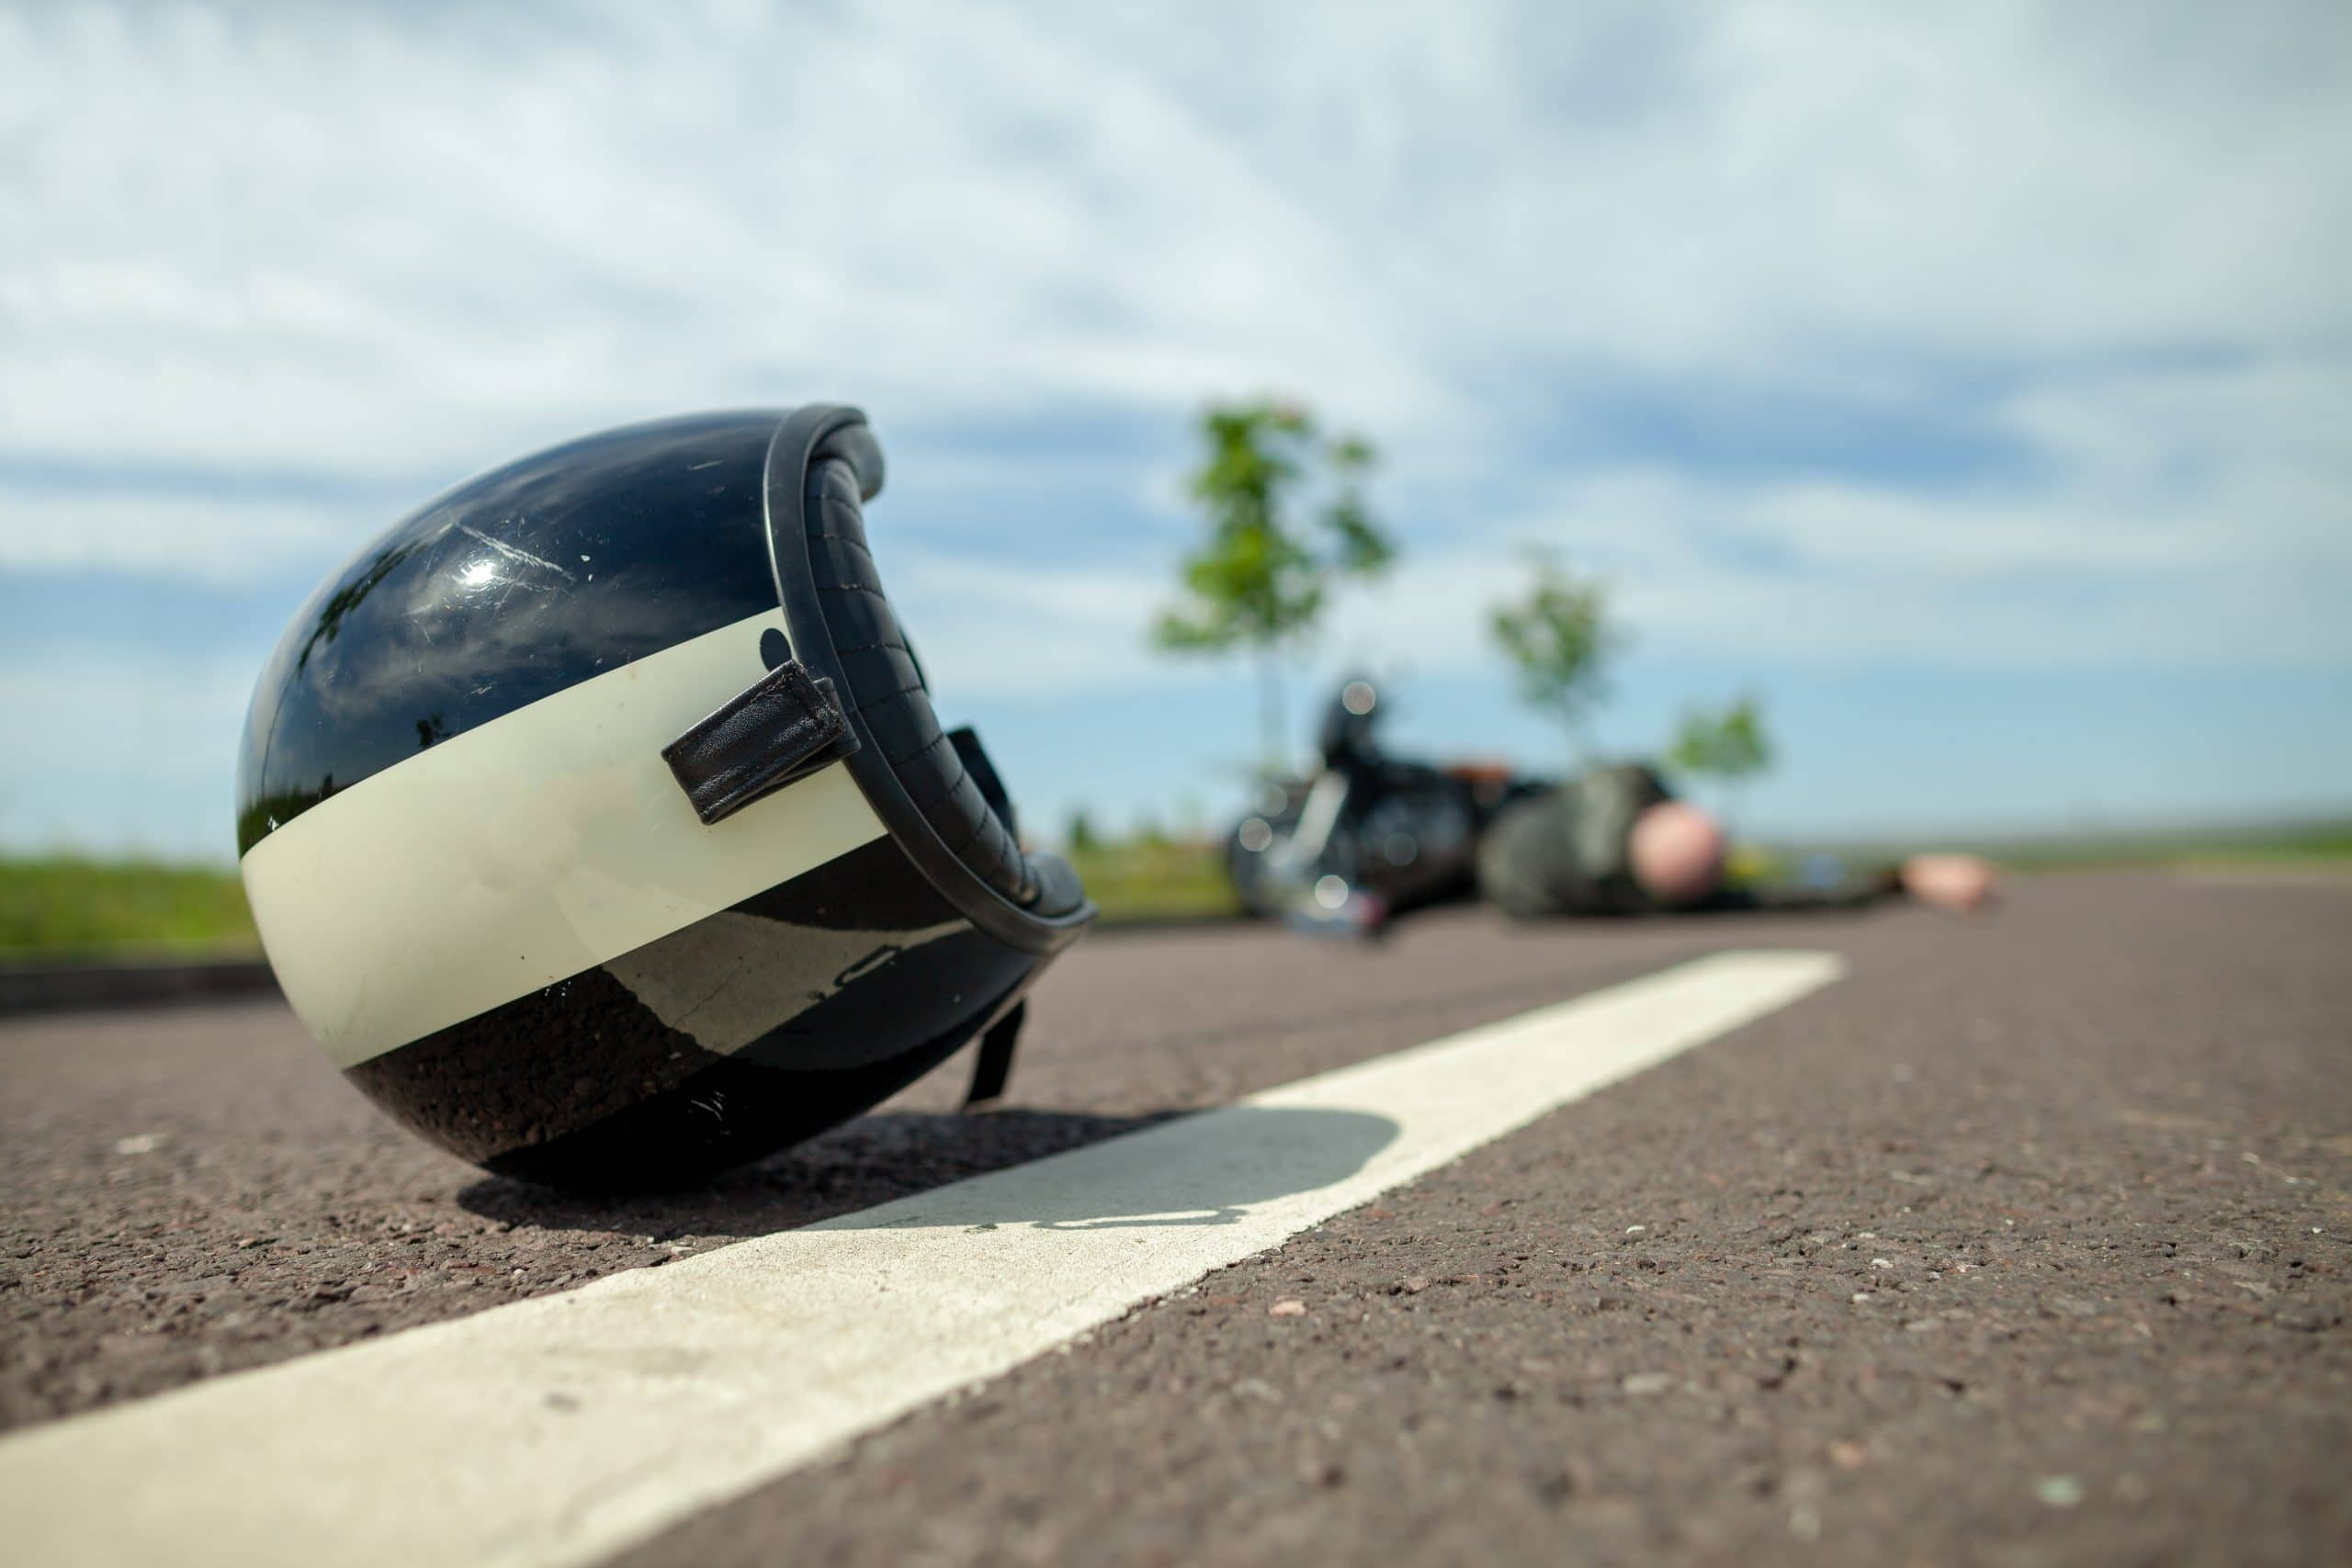 3 Reasons Motorcycle Crashes Are More Severe Than Car Crashes